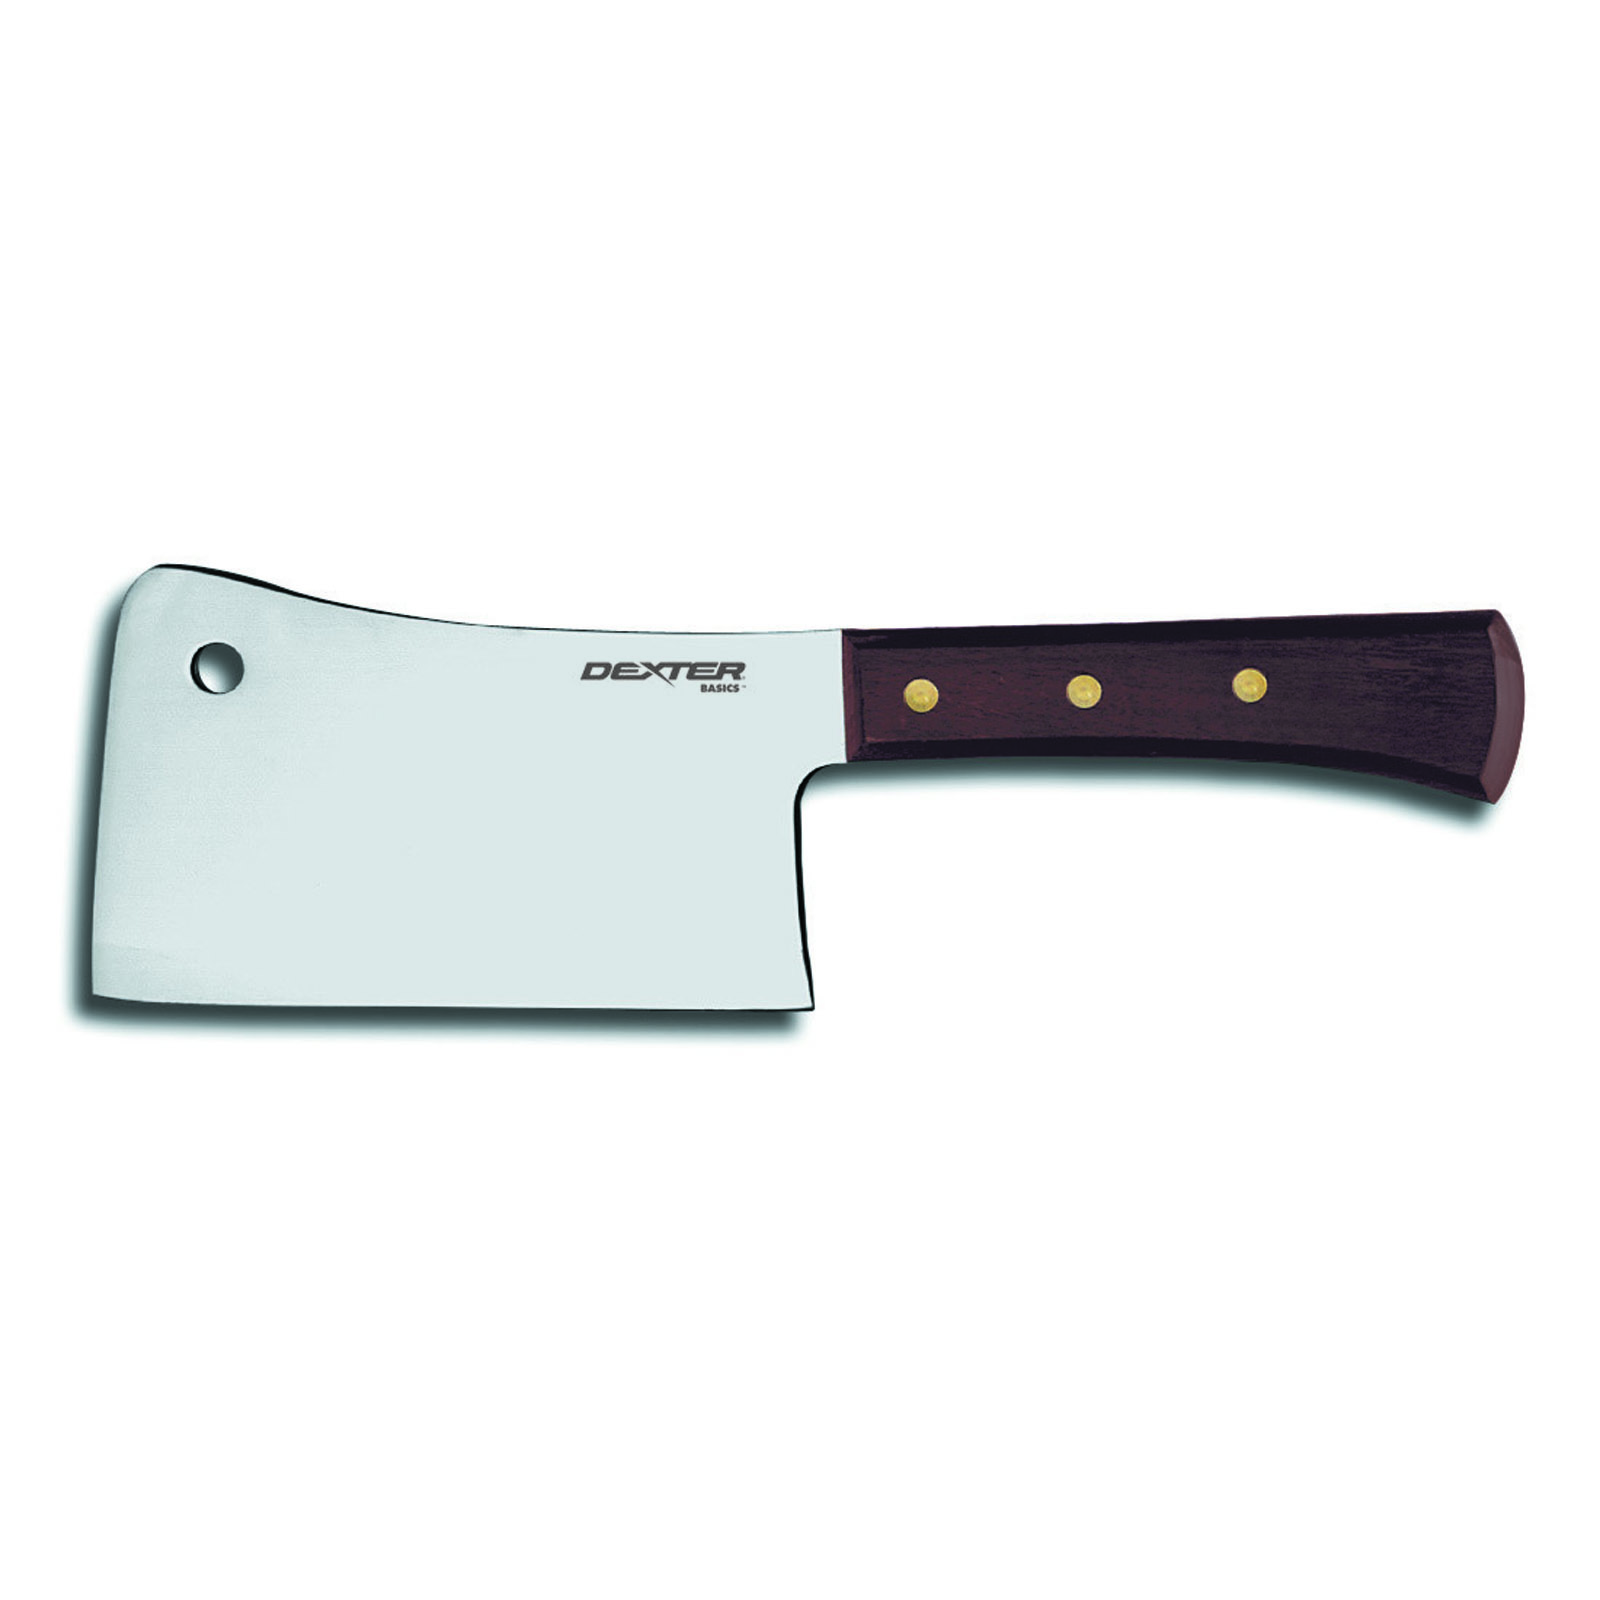 Dexter Russell 49542 cleaver